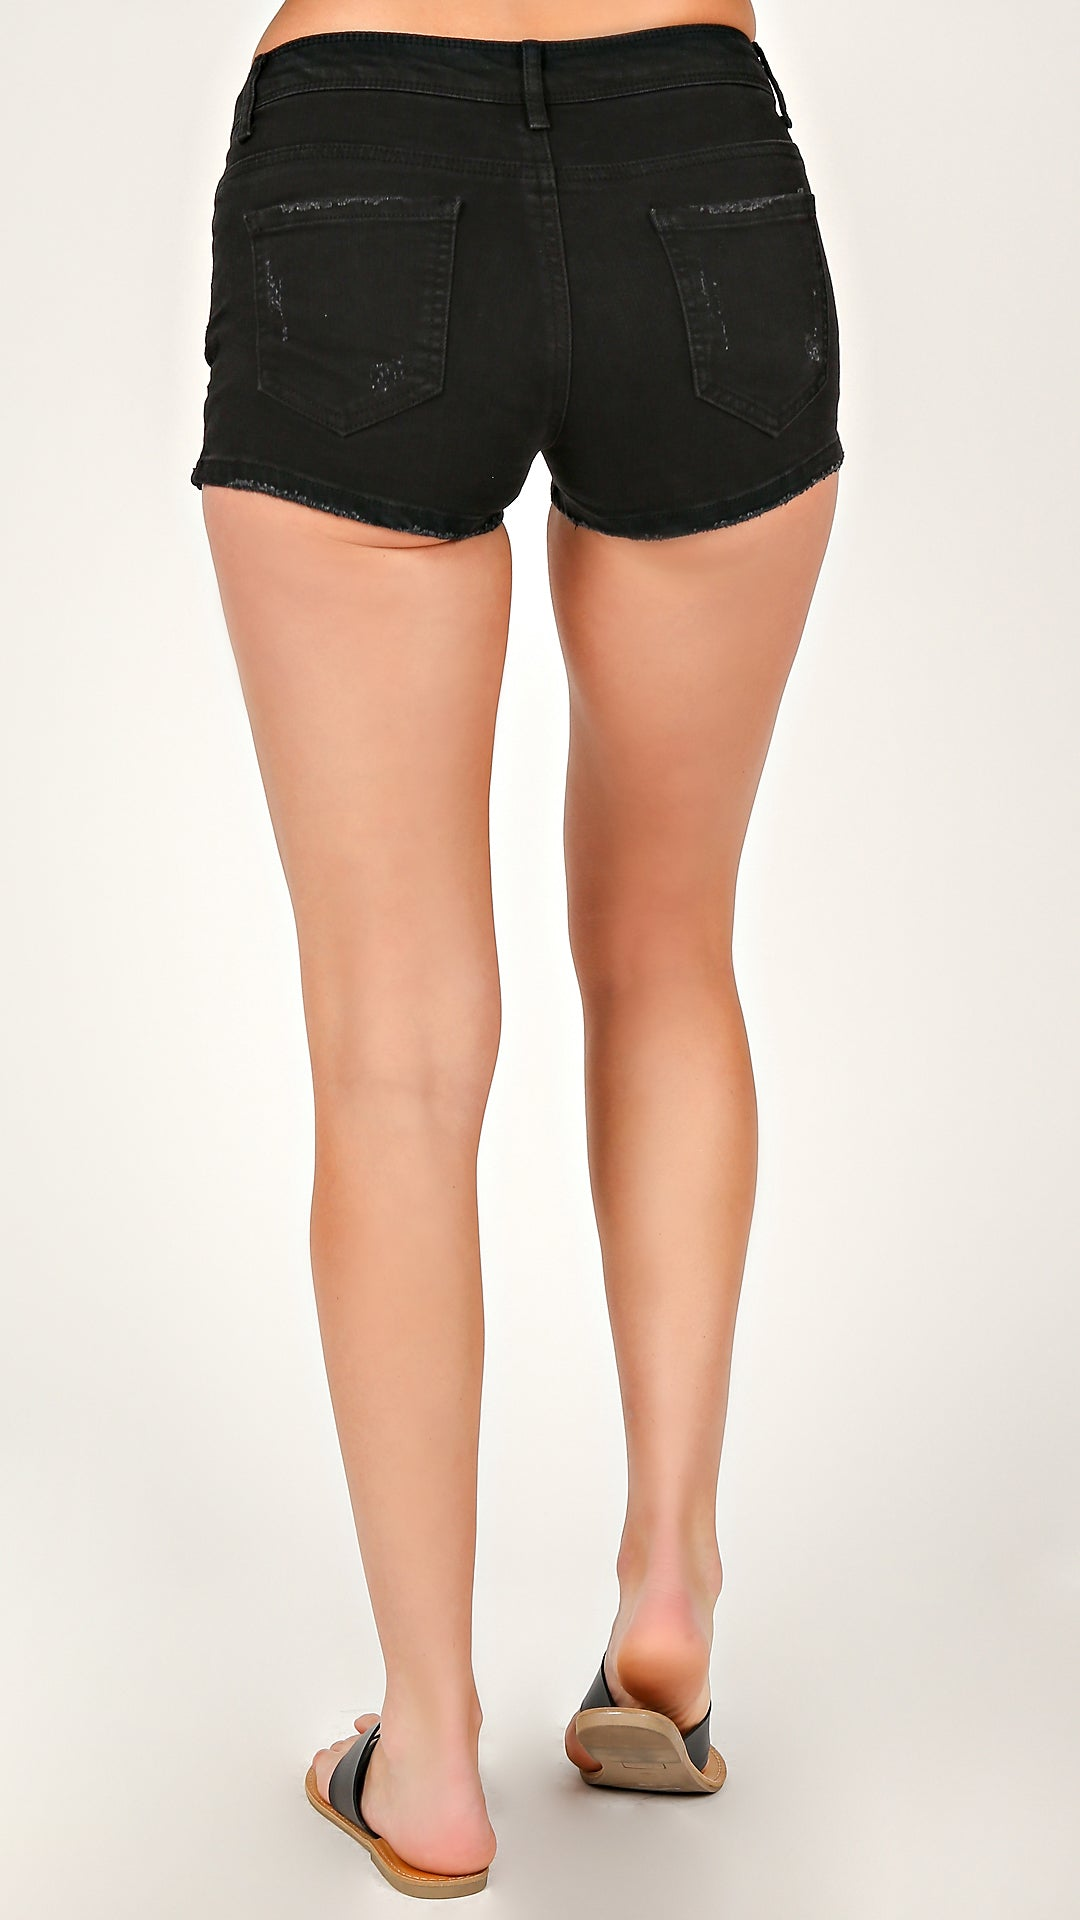 Black Lightly Distressed Classic Shorts